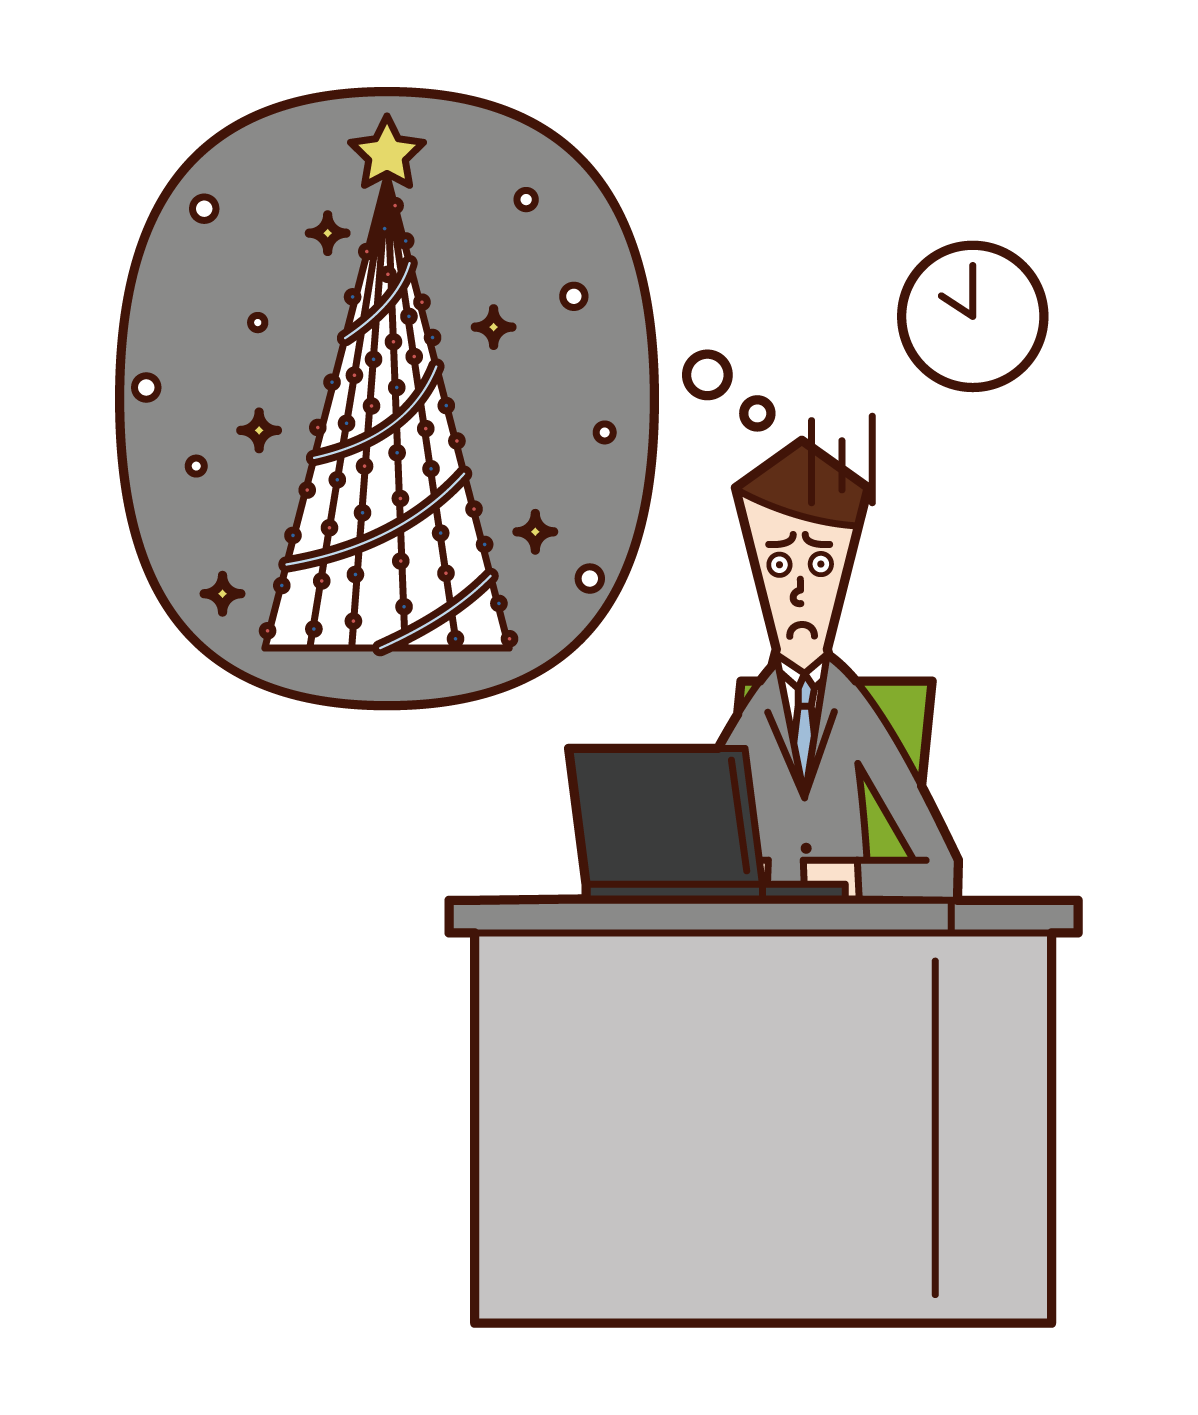 Illustration of a man working at Christmas